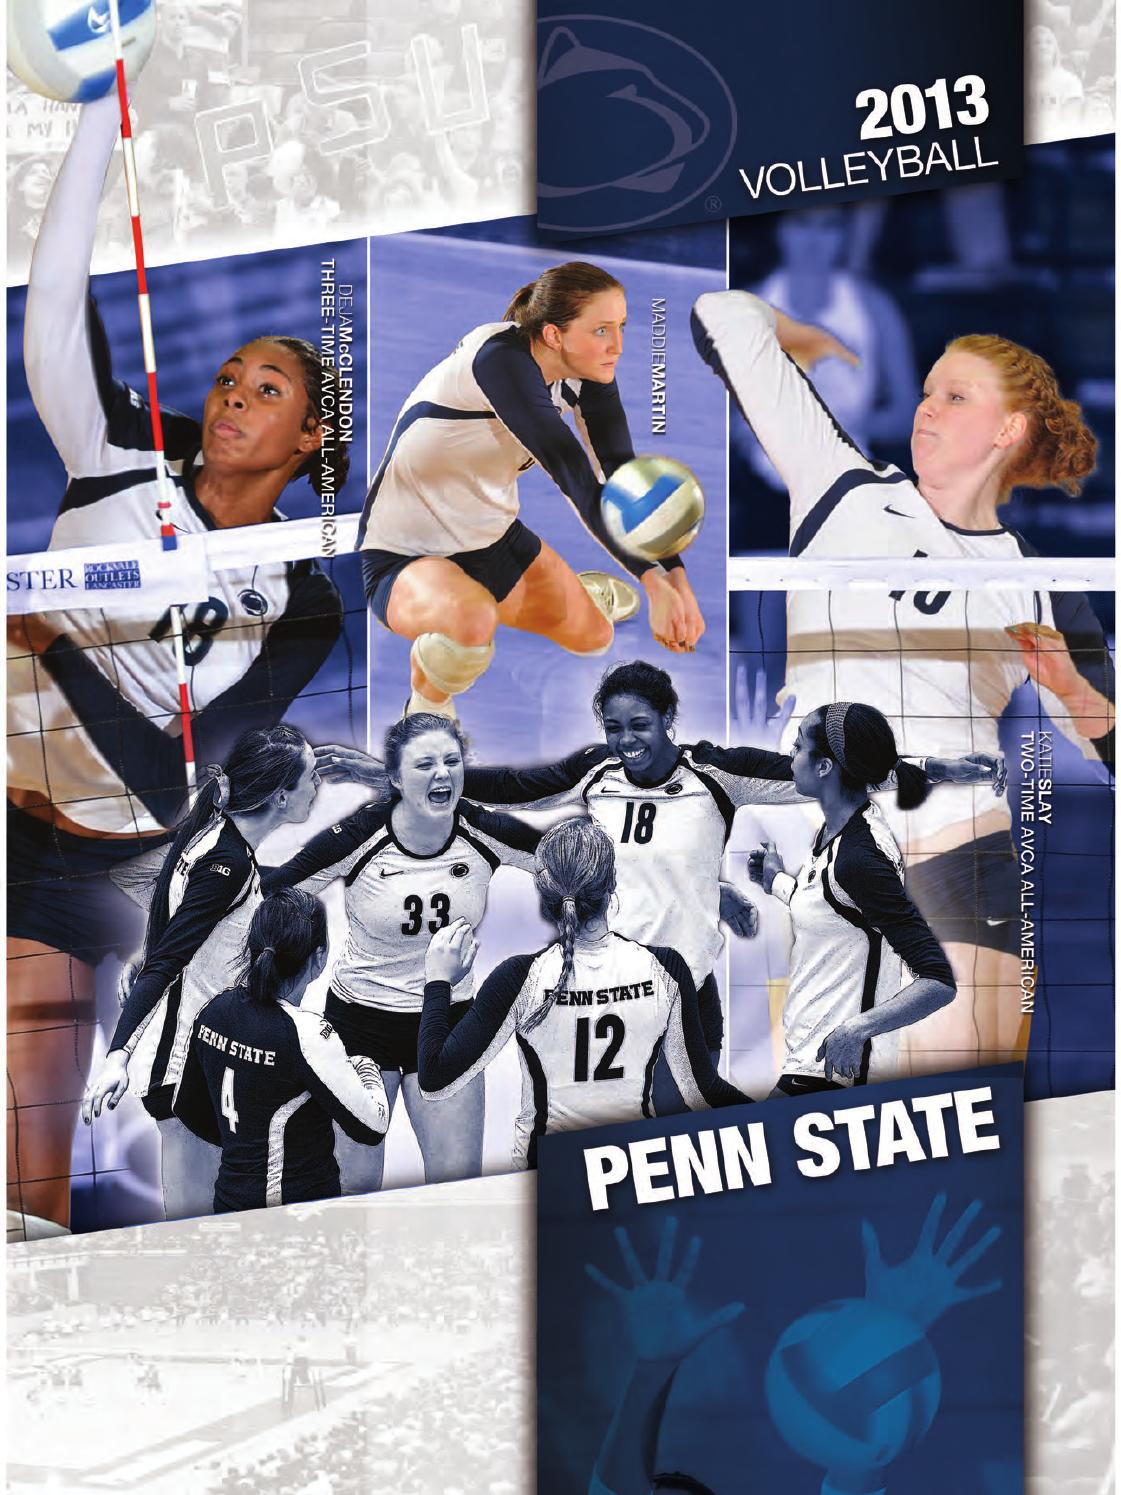 2013 Penn State Women S Volleyball Yearbook By Penn State Athletics Issuu